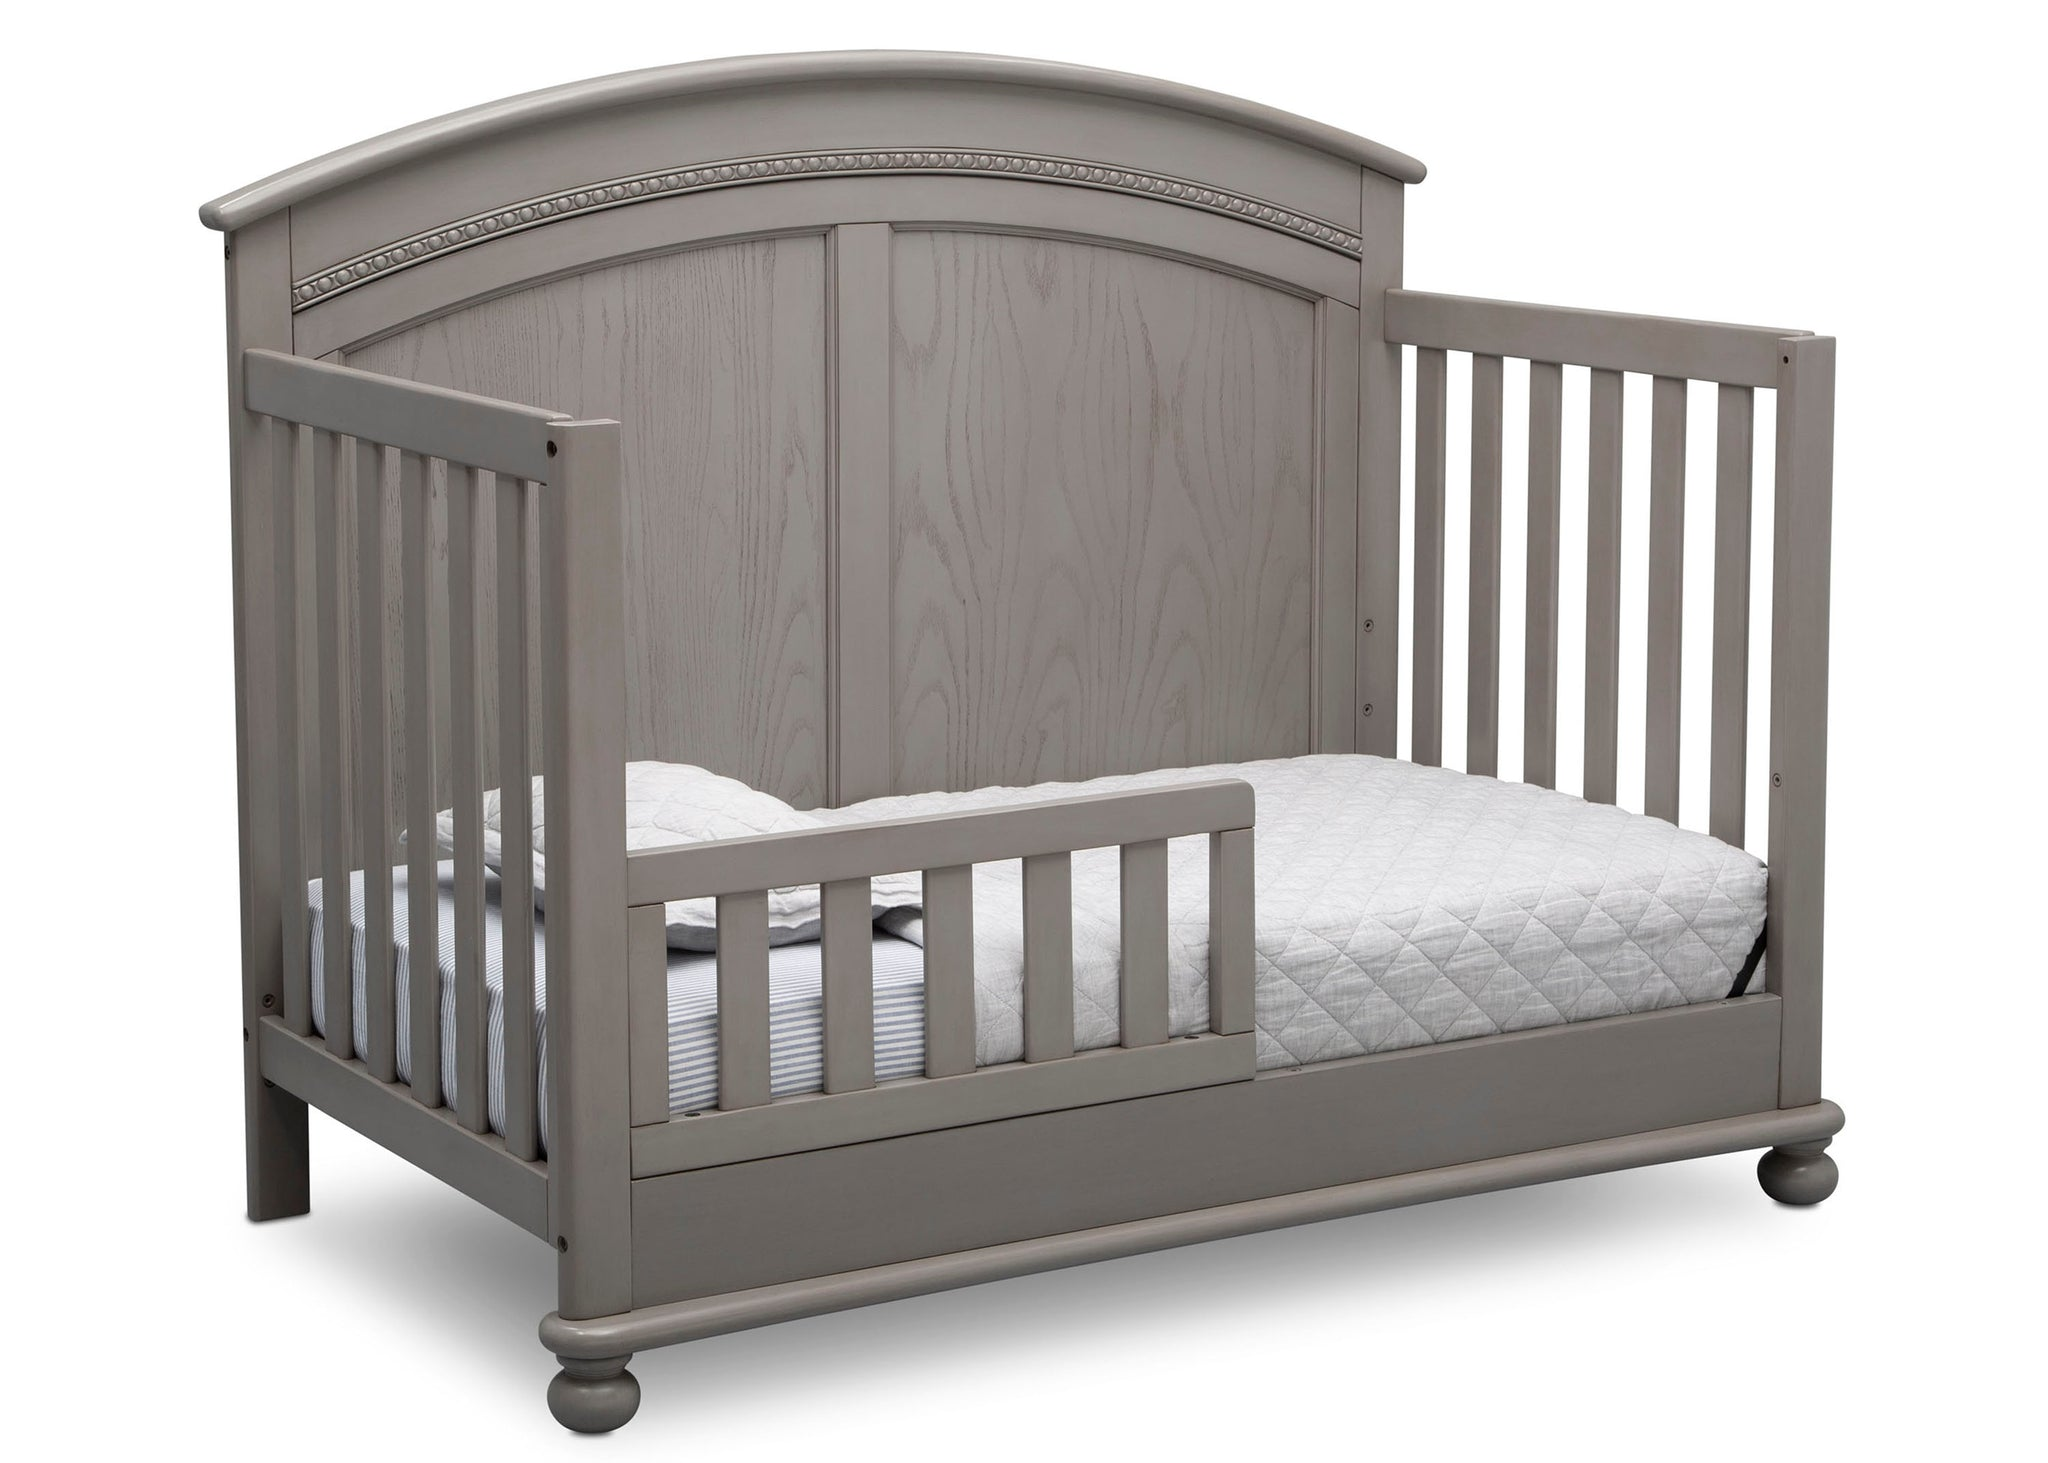 Simmons Kids Storm (161) Ainsworth 4-in-1 Convertible Crib (W337250), Toddler Bed Conversion, b4b